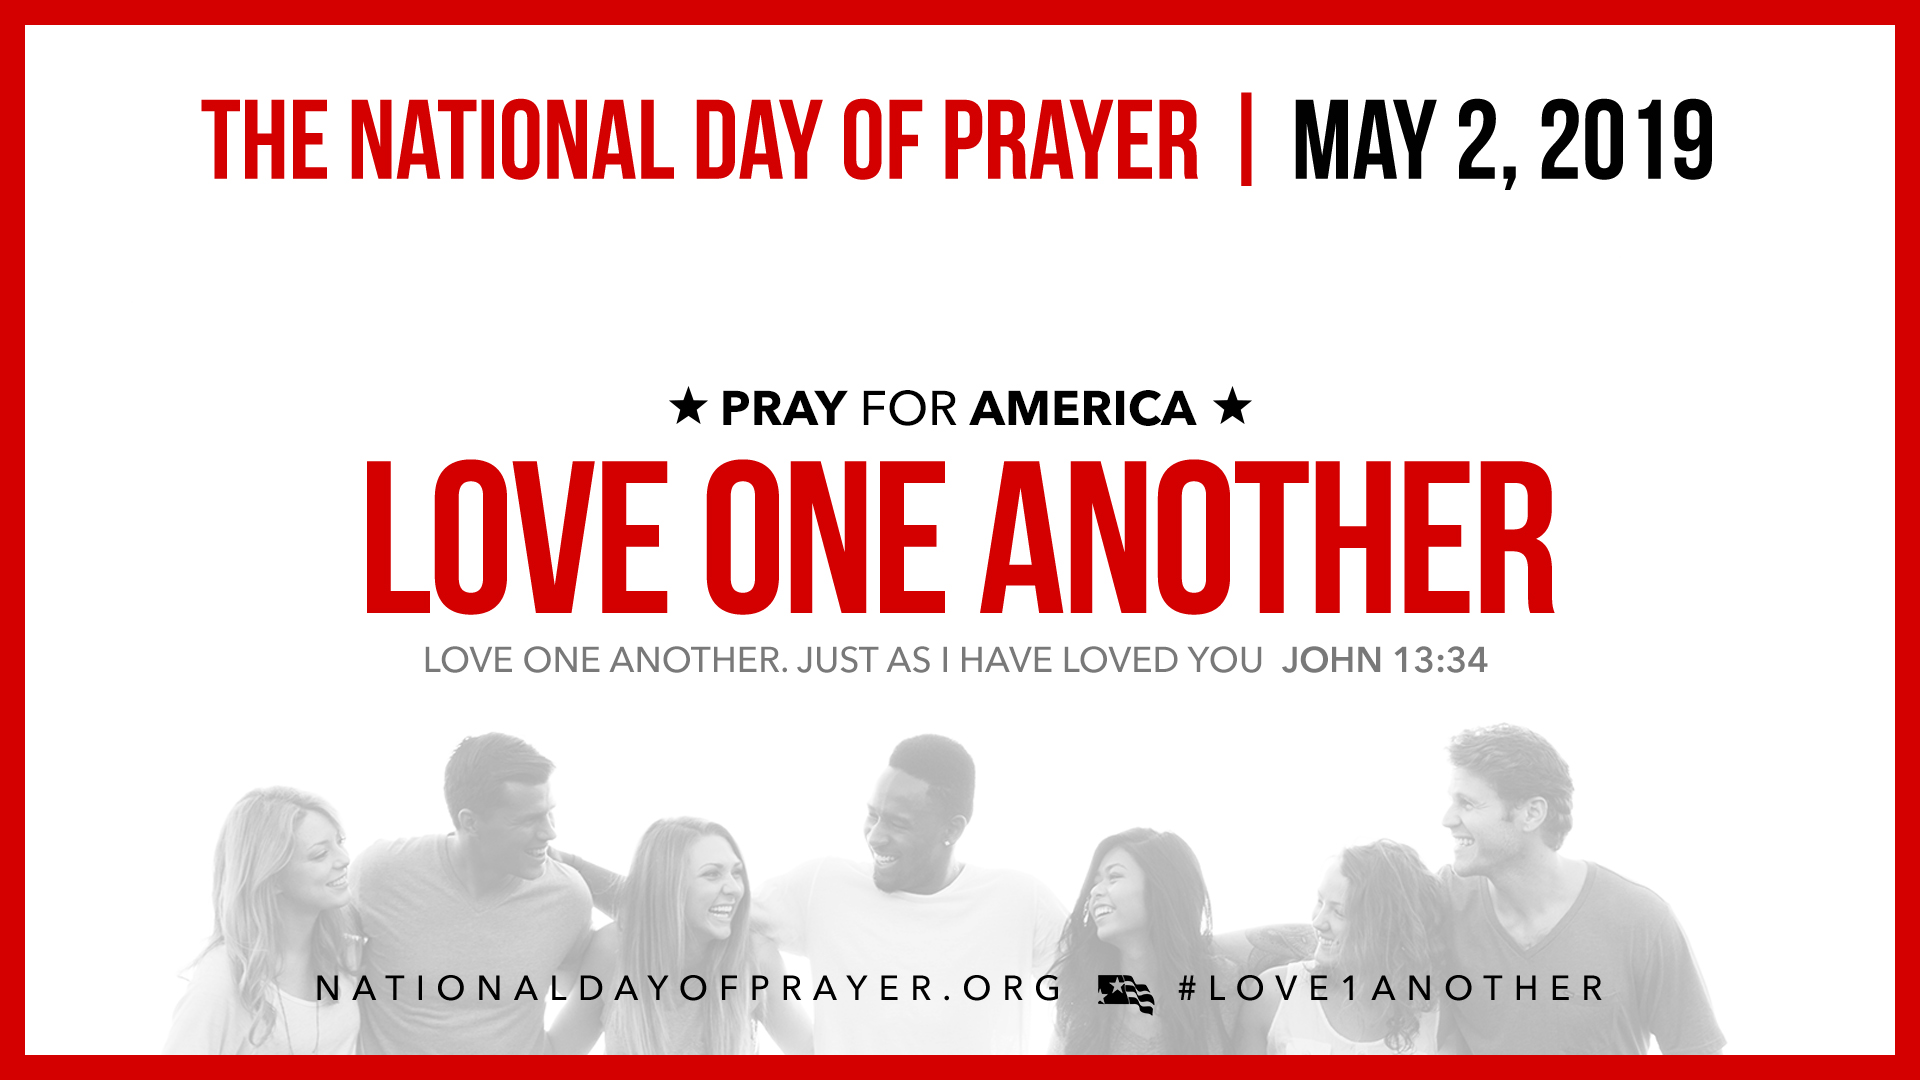 National Day of Prayer to call Americans to 'Love One Another,' Thursday, May 2